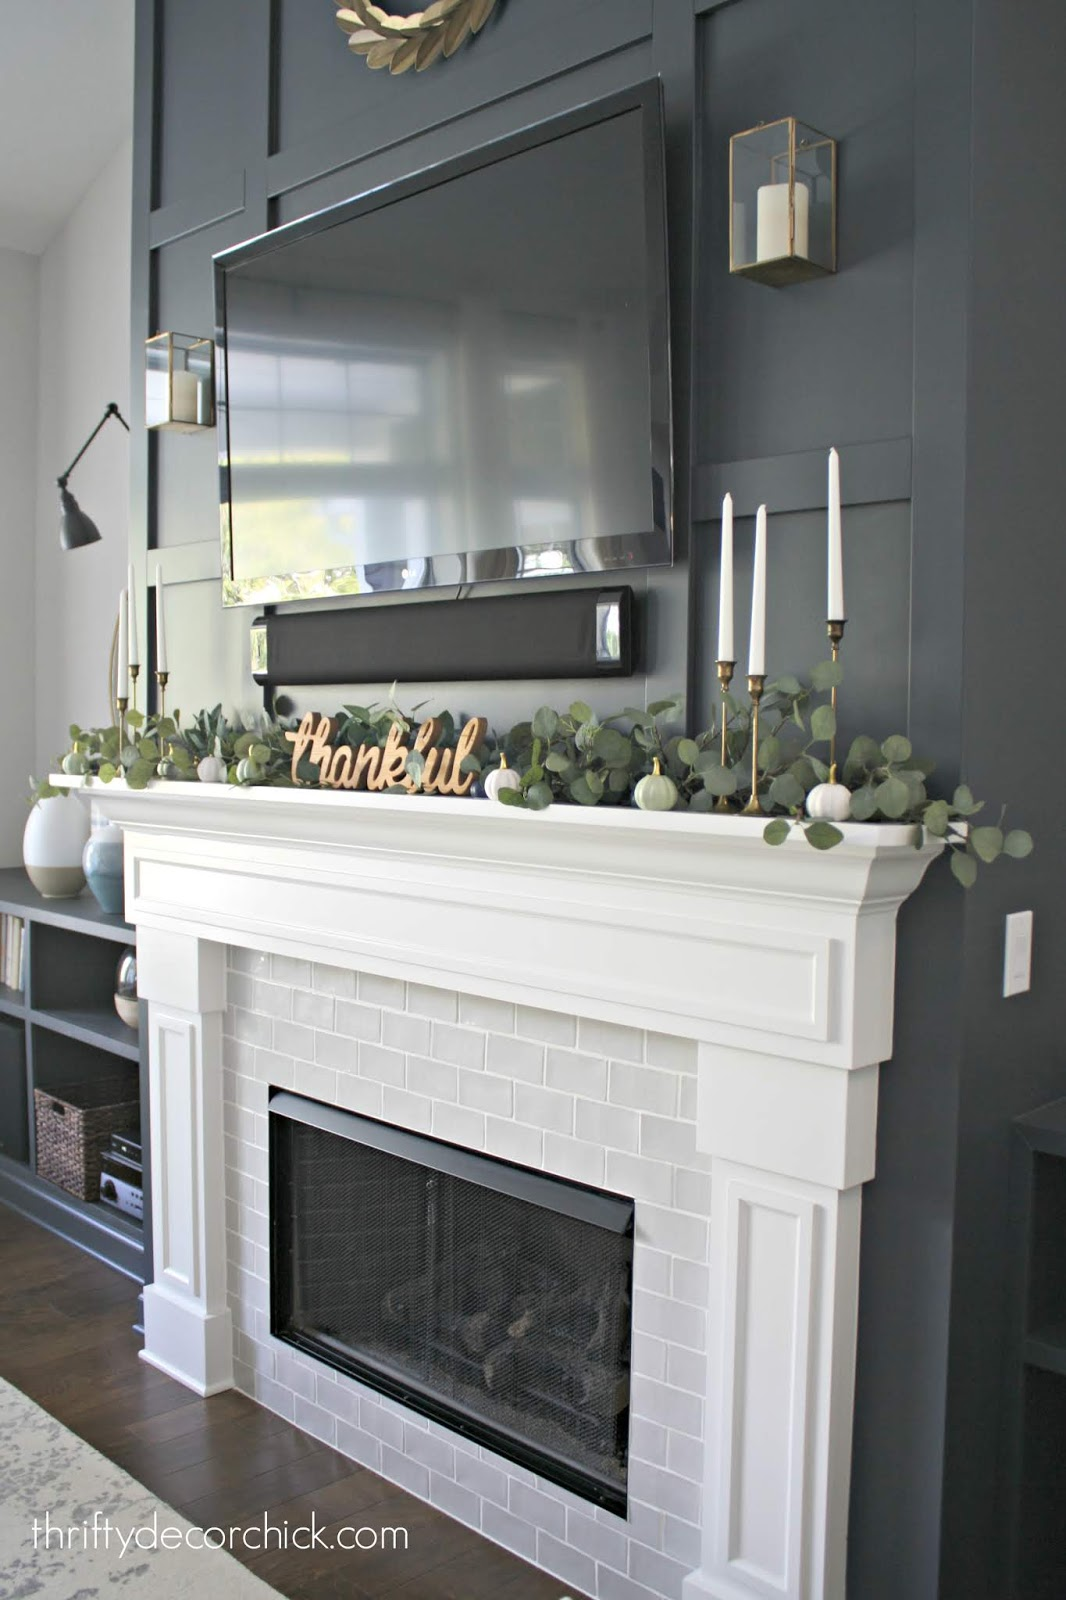 Simple fall mantel with greenery and candles